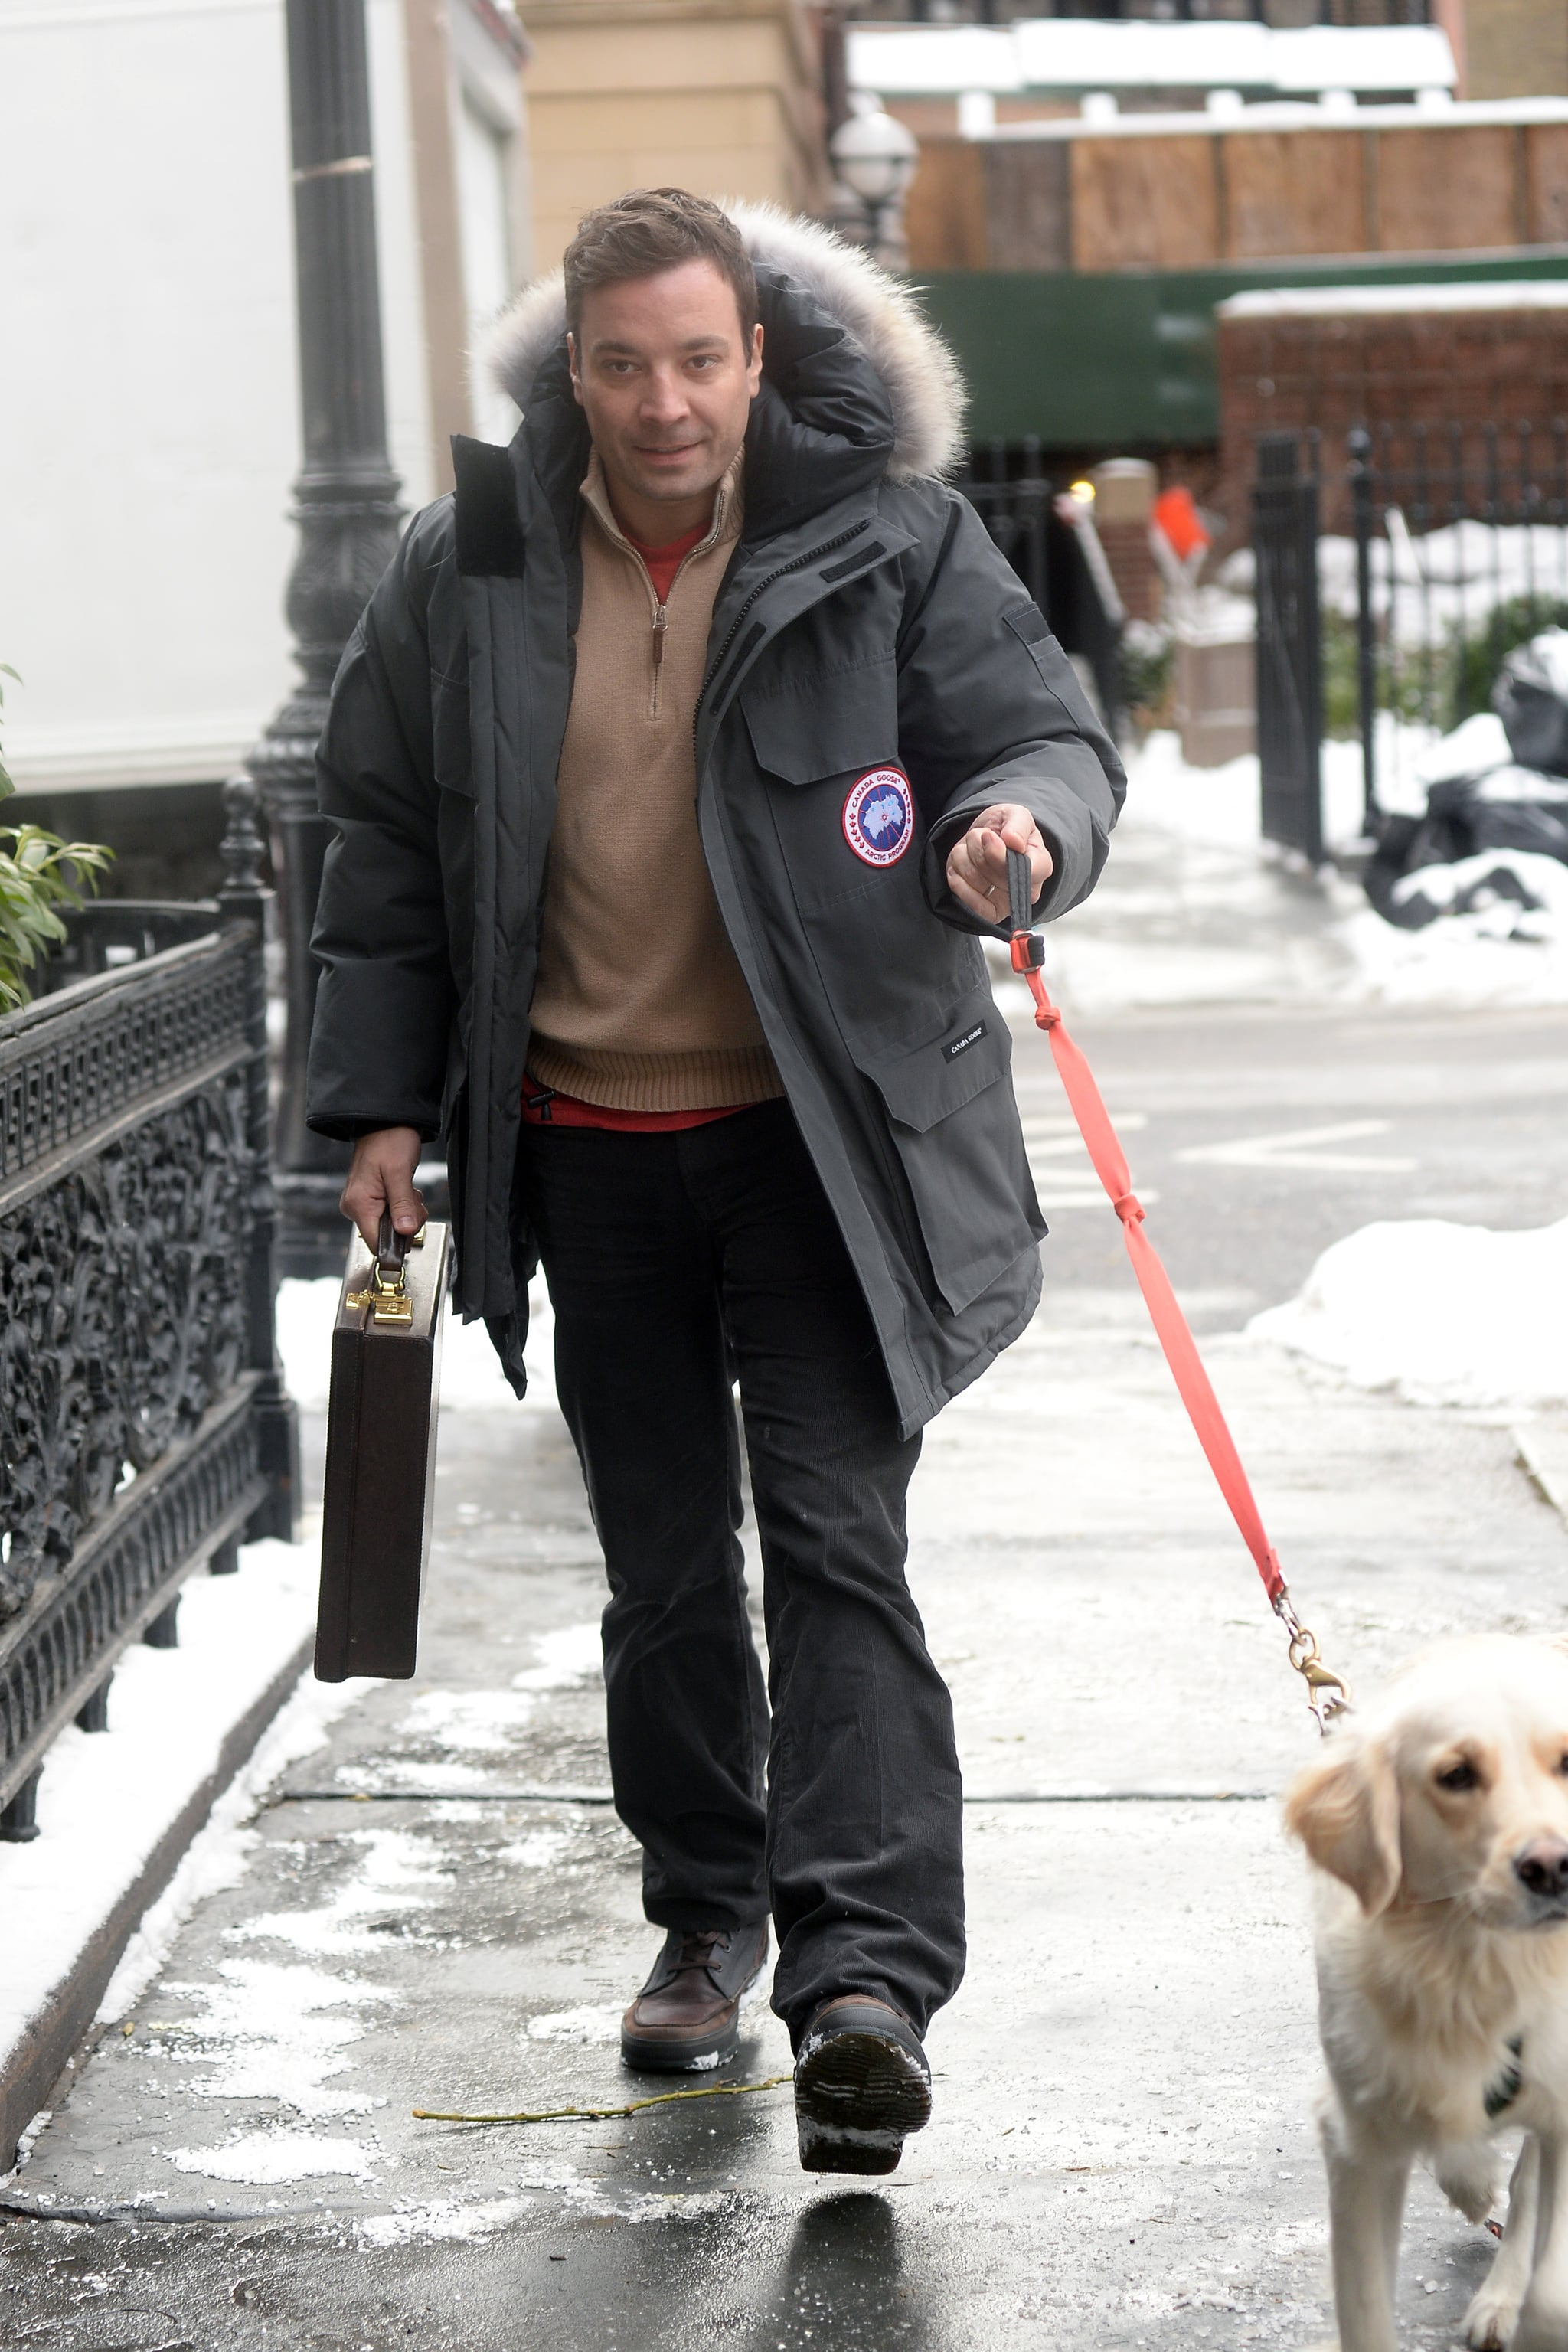 Jimmy Fallon held a briefcase while walking his dog on Sunday in NYC.